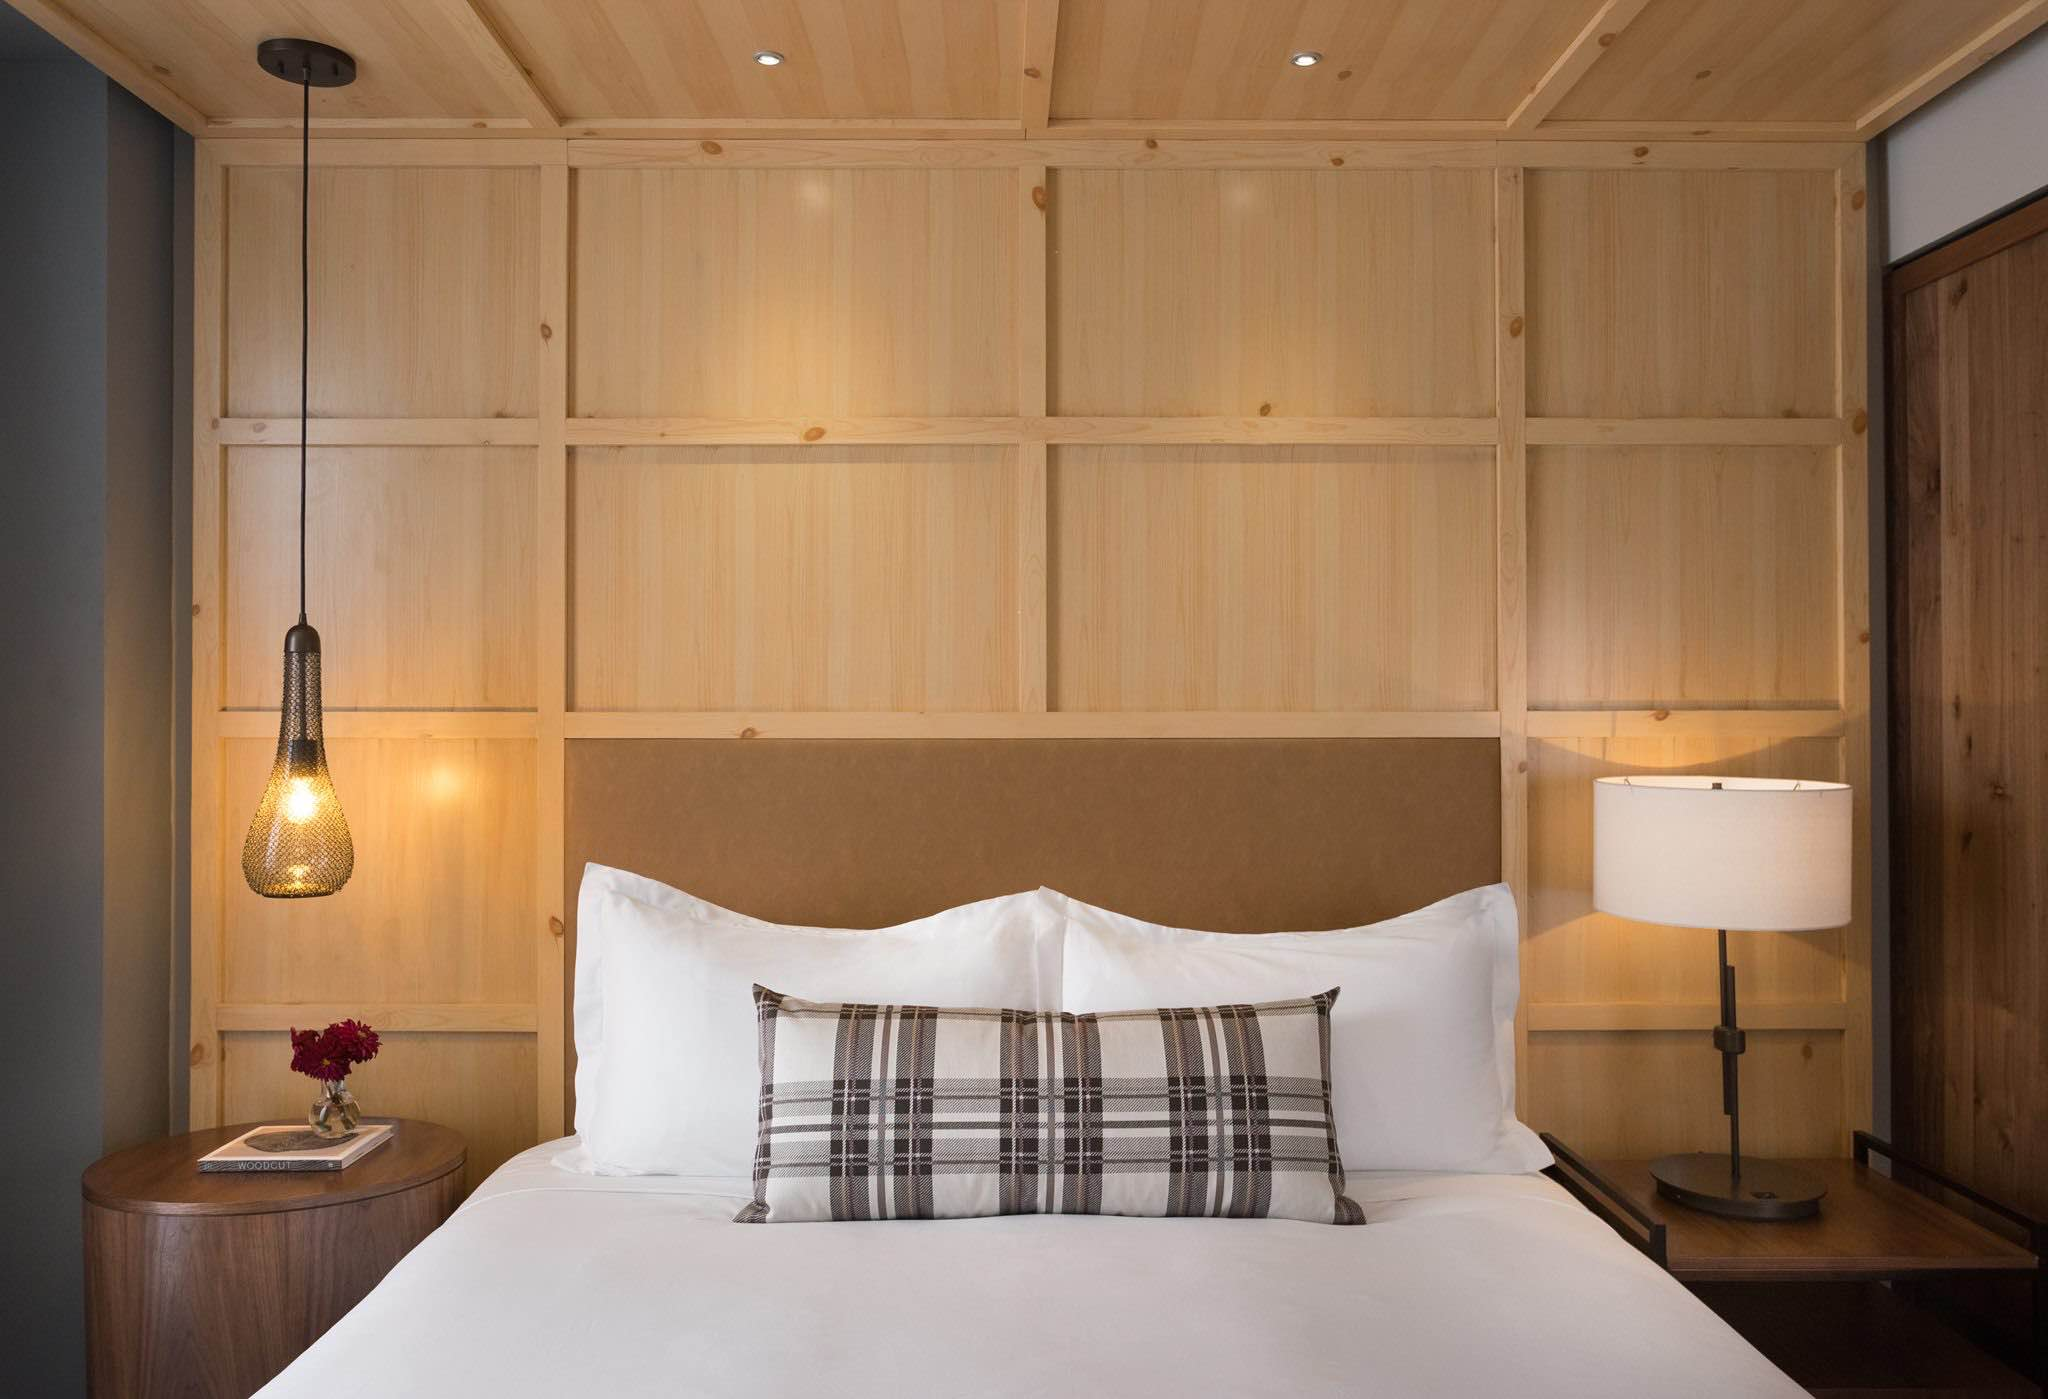 Kimpton Hotel Born bed with wood panelling